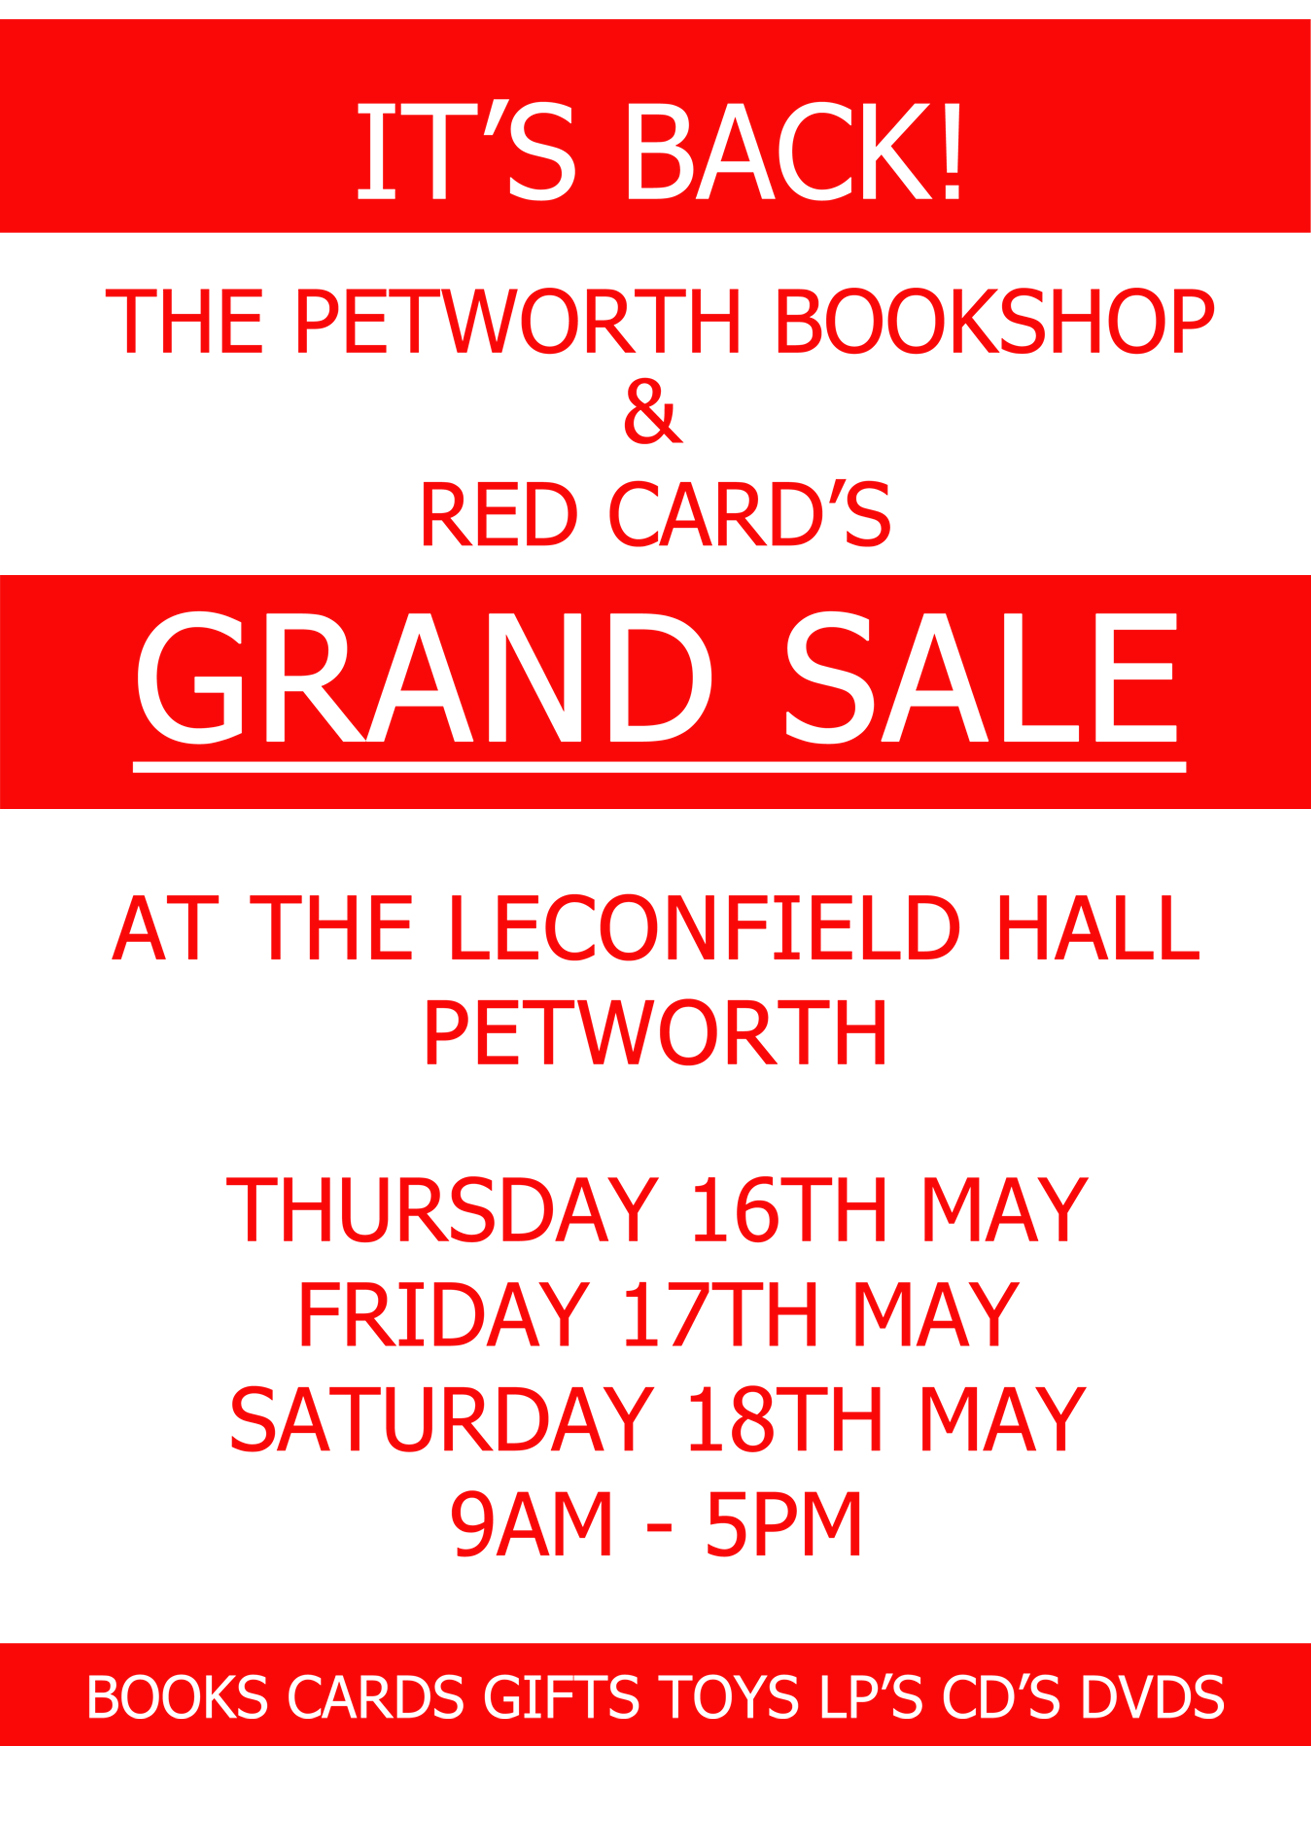 Grand Sale - The Petworth Bookshop & Red Card